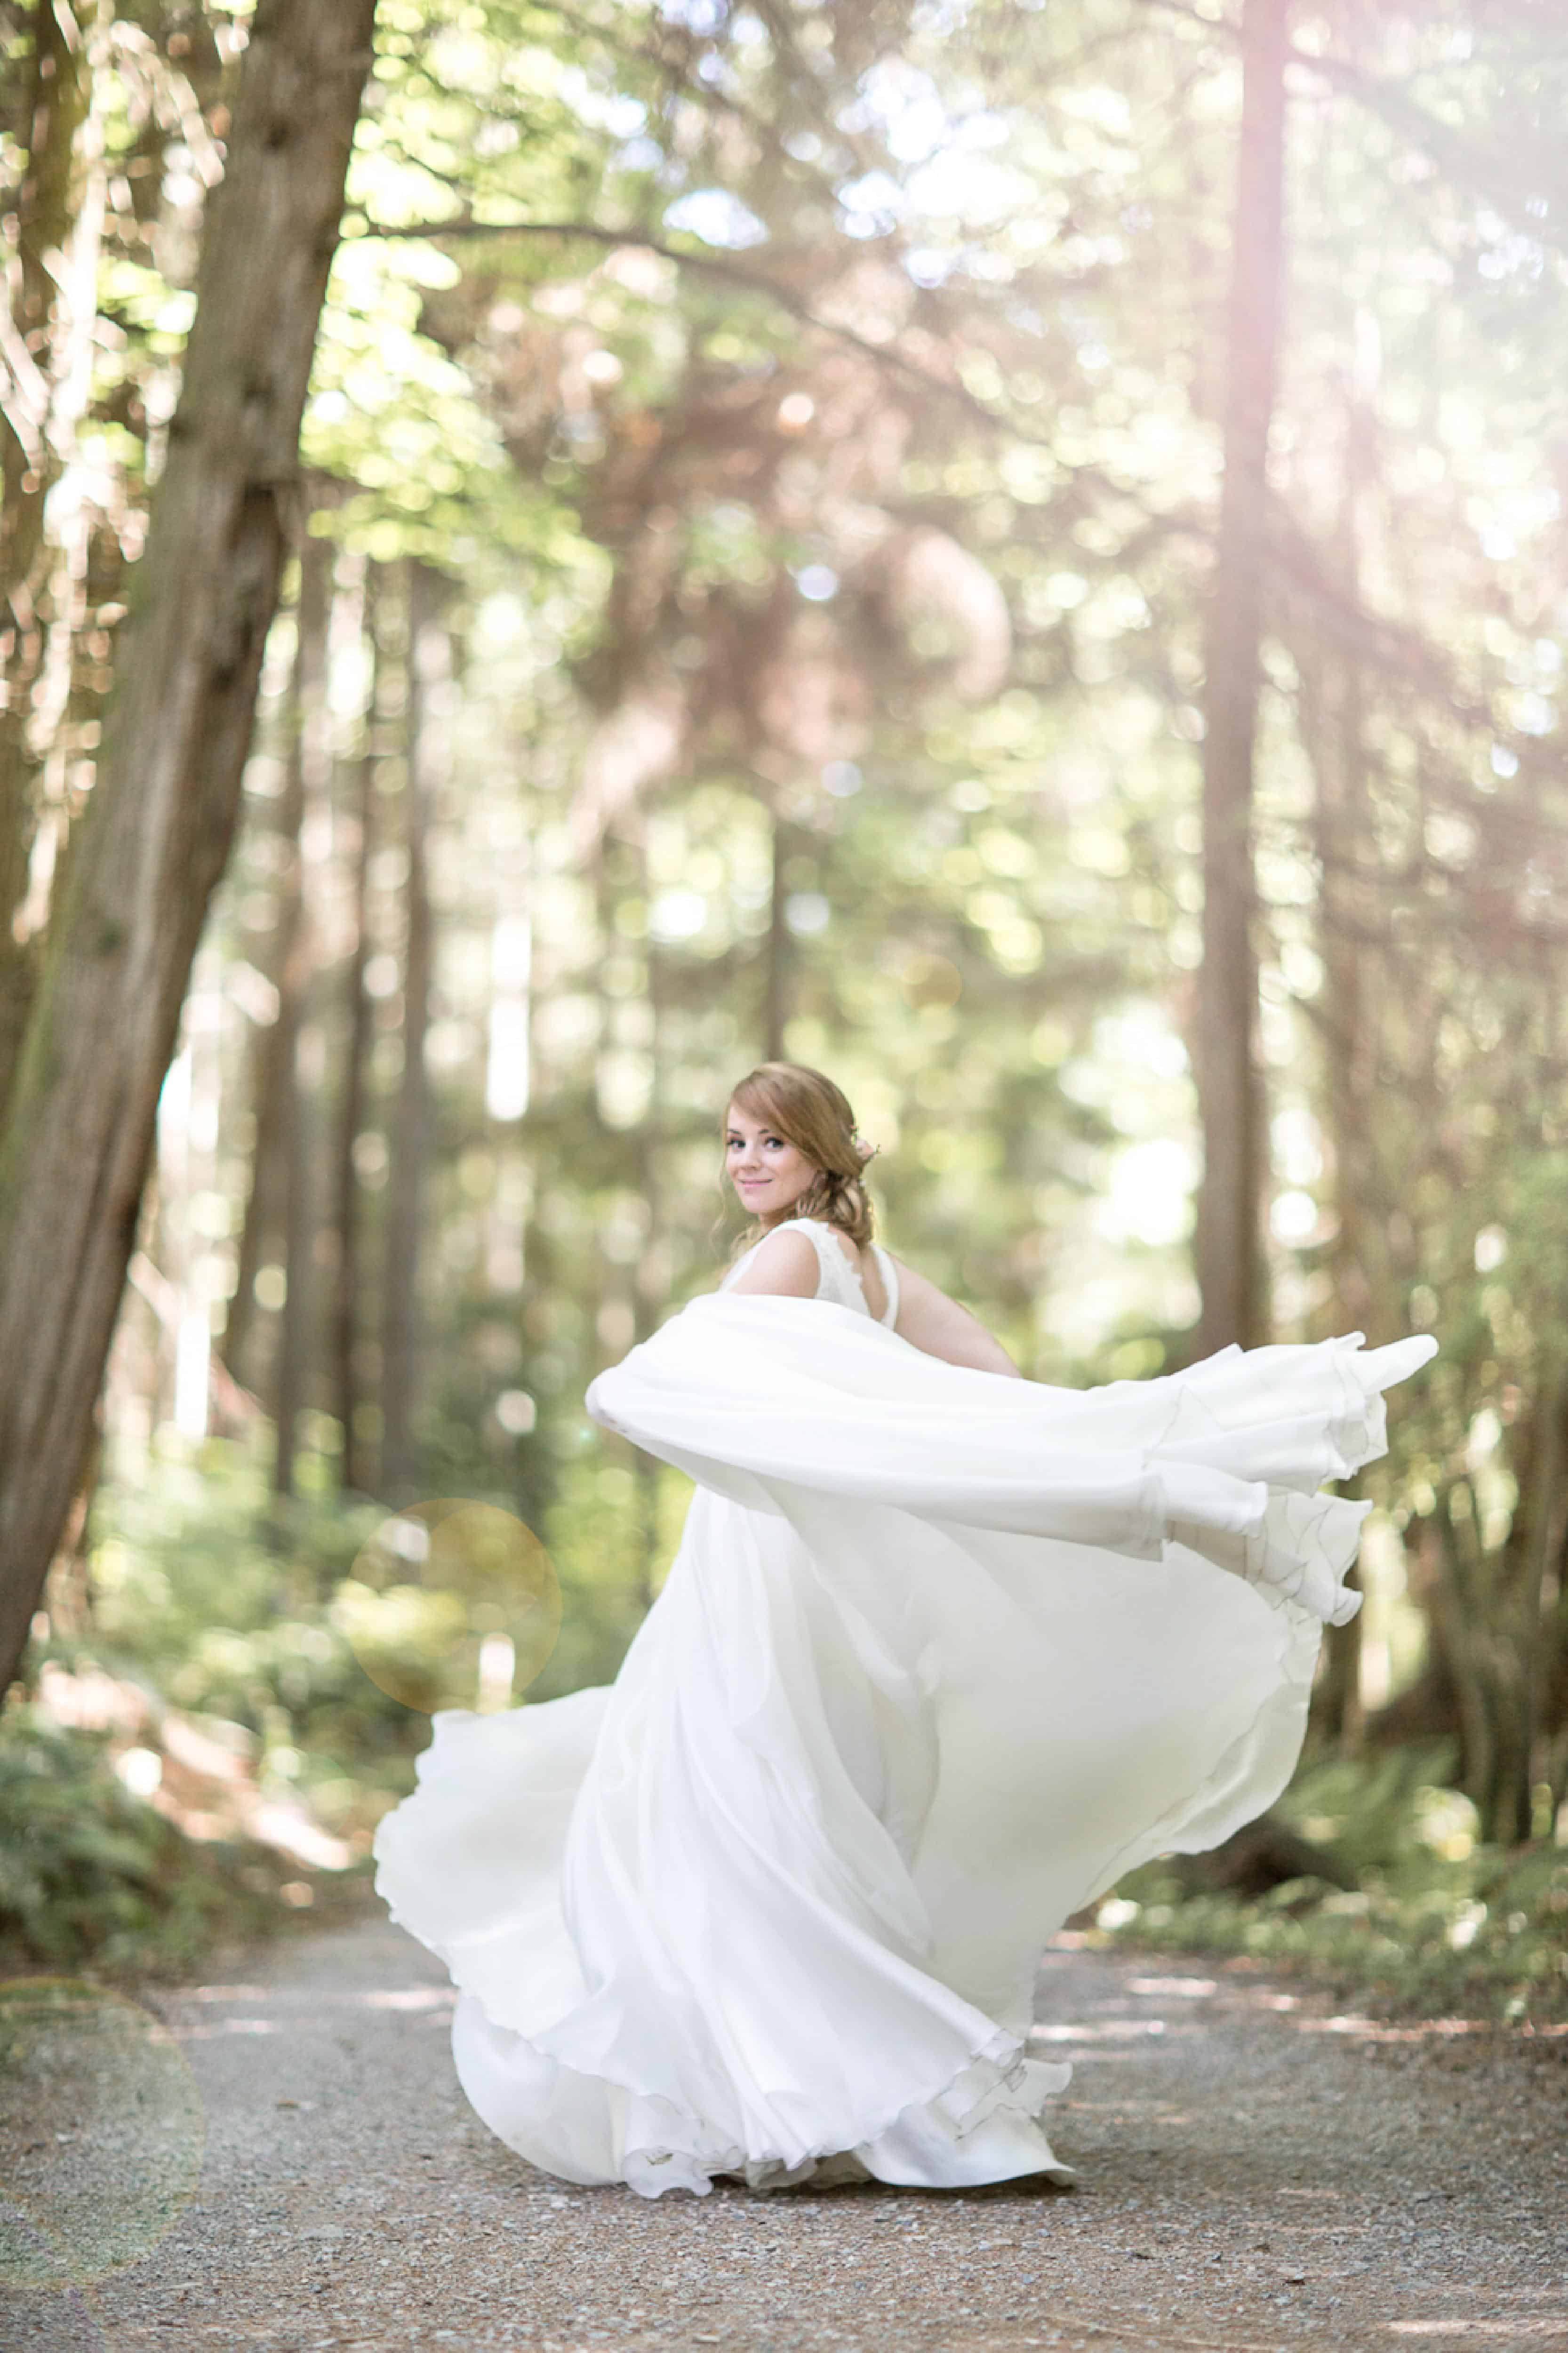 Flowing white wedding gown, Pacific Spirit Regional Park